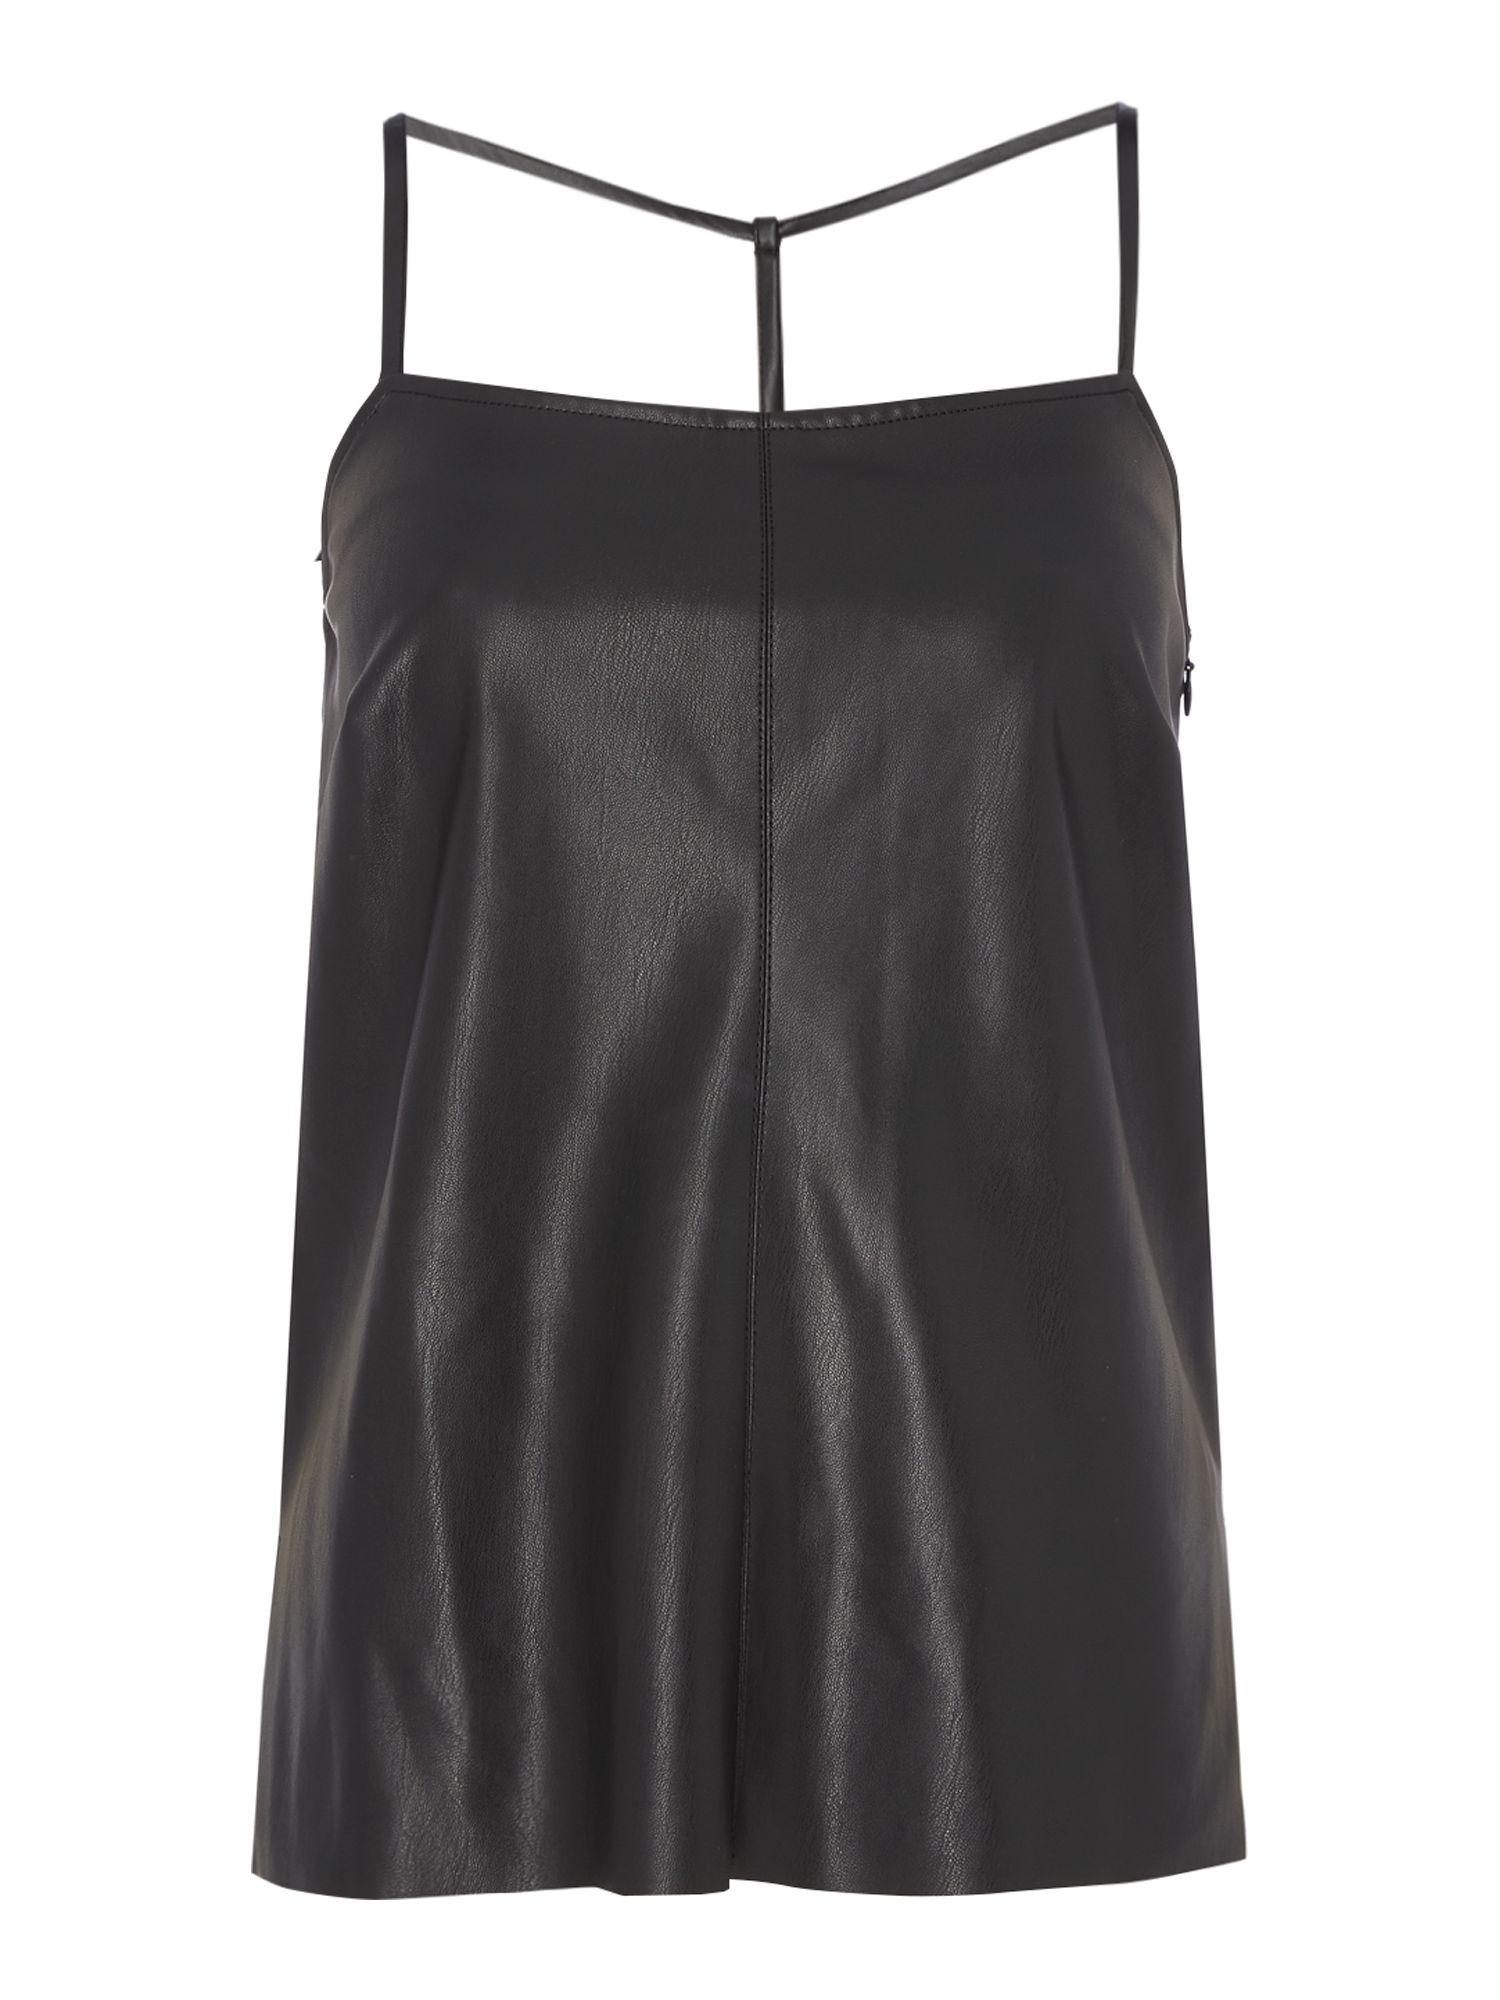 Label Lab PU T-bar Cami, Black